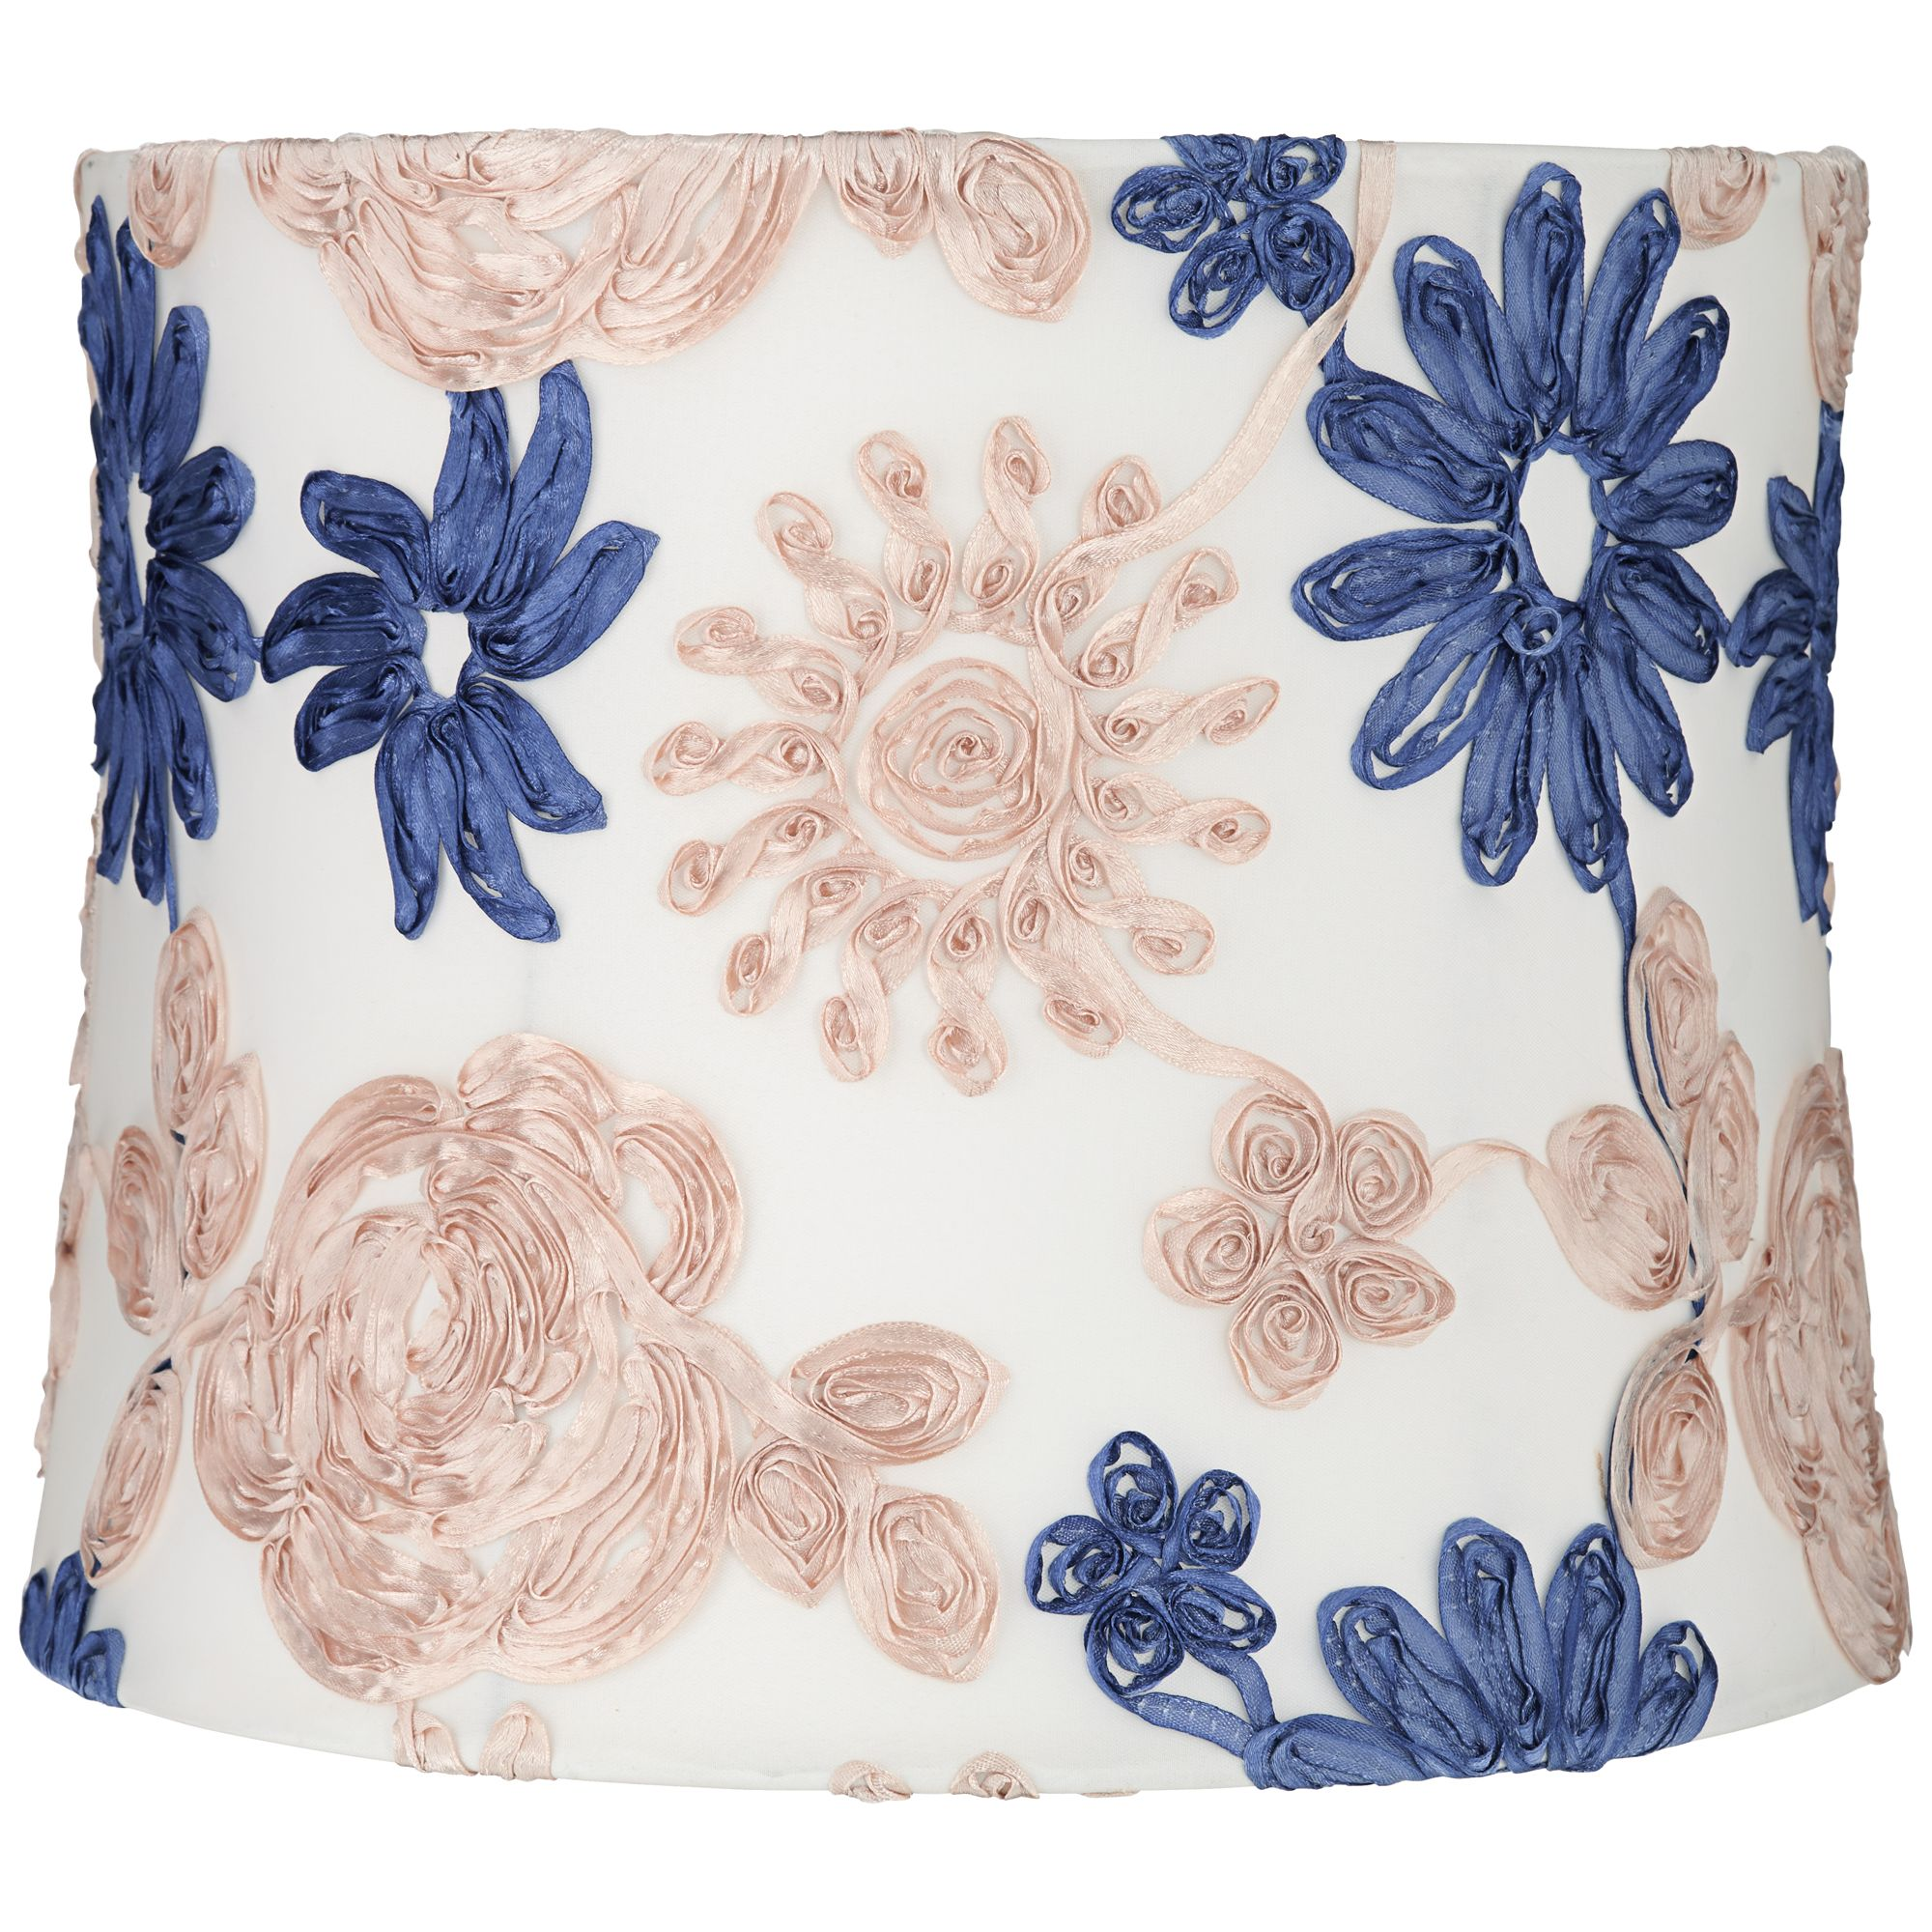 Springcrest Blue and Beige Soft Drum Lamp Shade 13x14x11 (Spider)